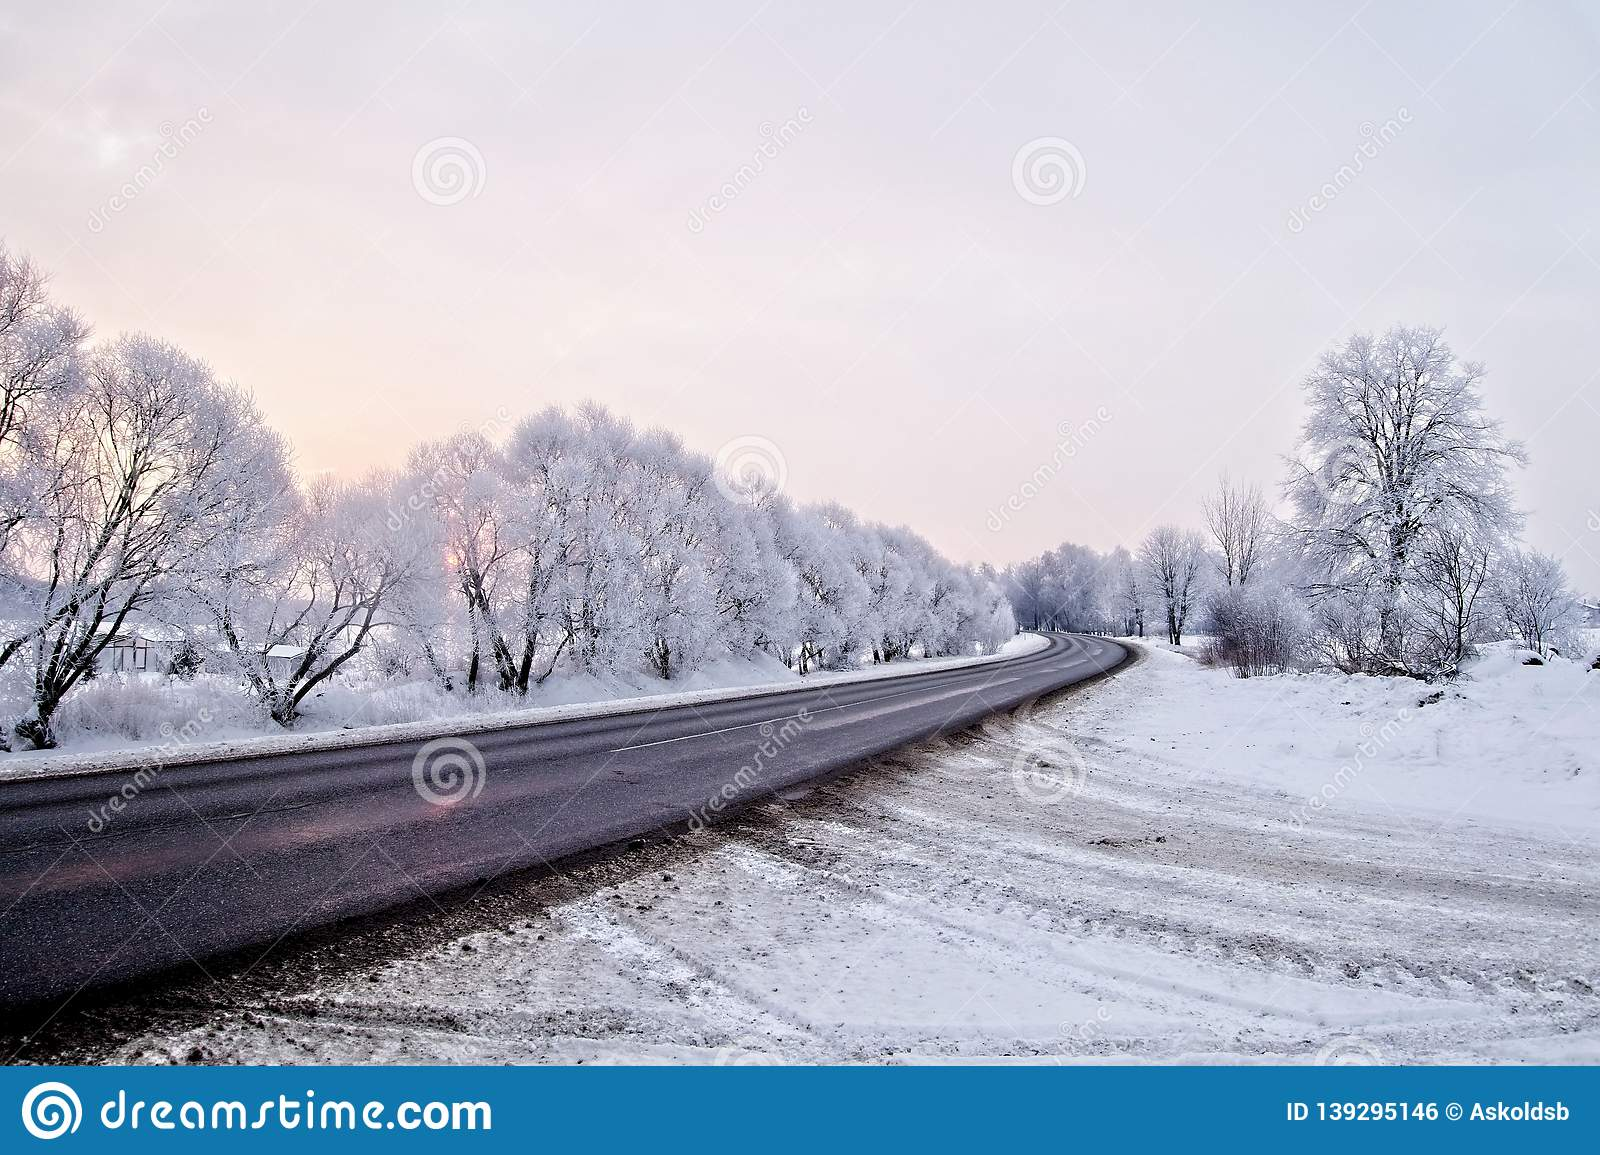 Winter landscape. Asphalted rural road at an early, cold winter sunrise - image